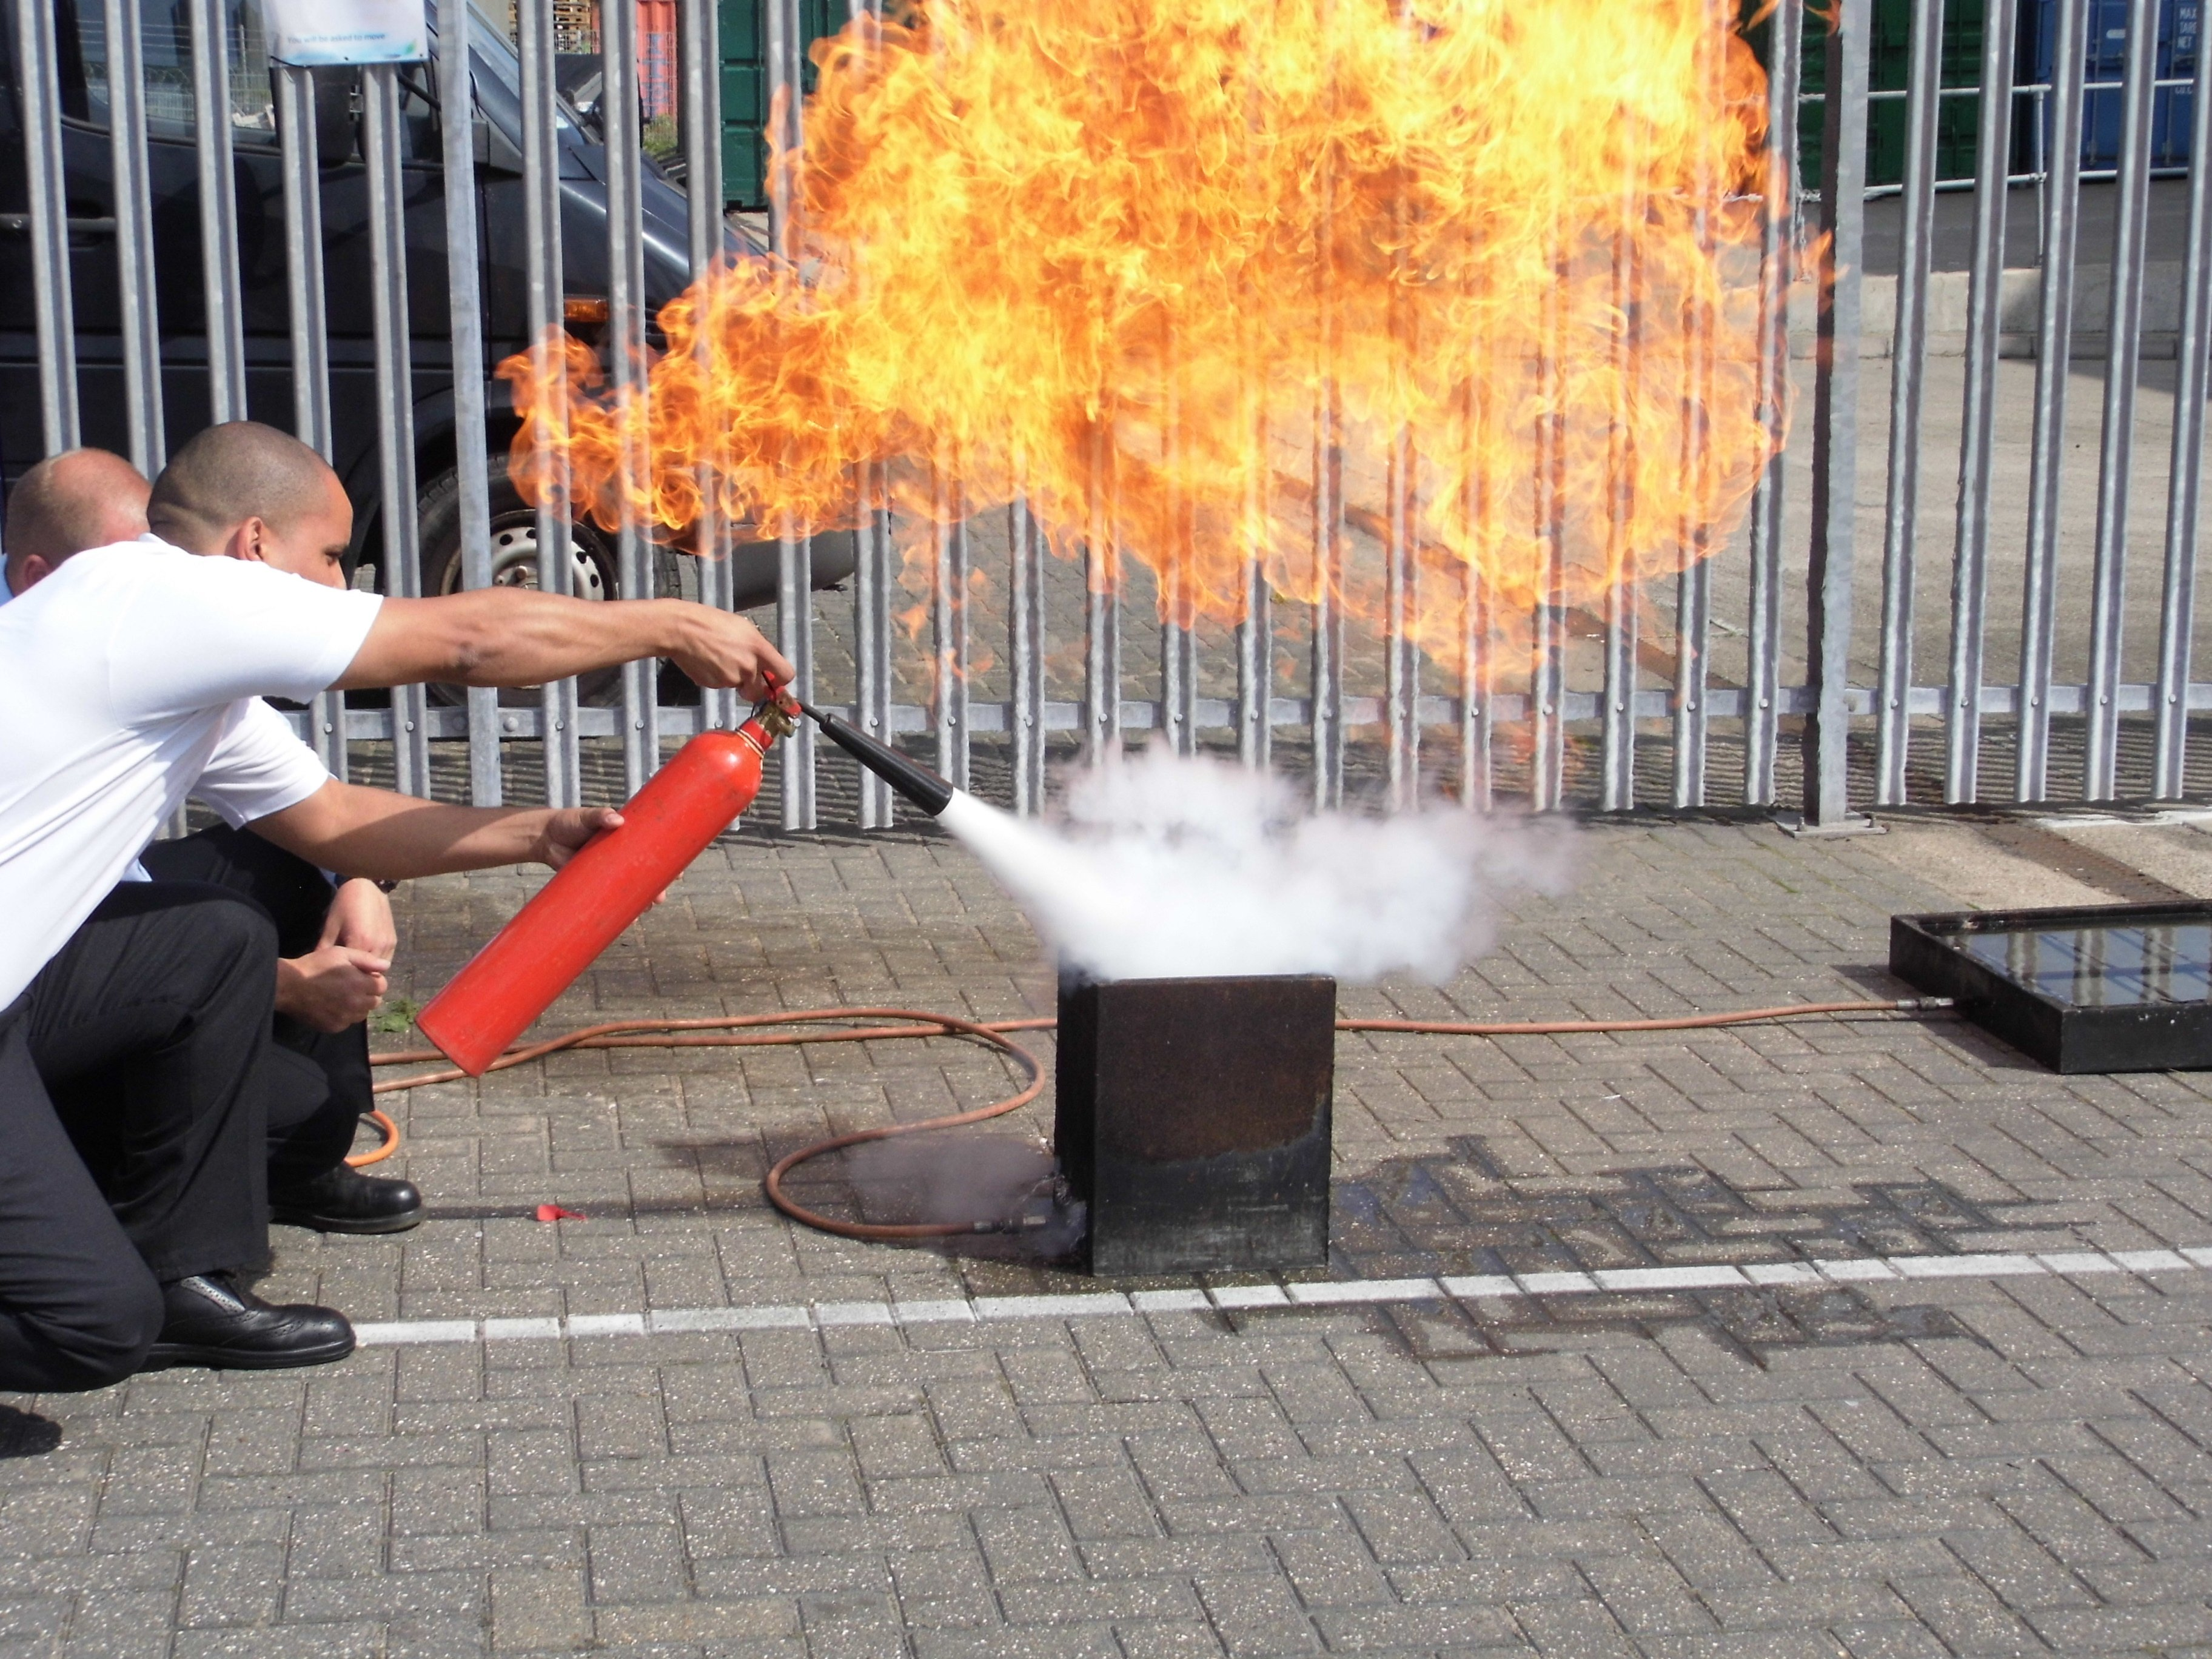 Fire Marshal Training, live fire training @ Leicester